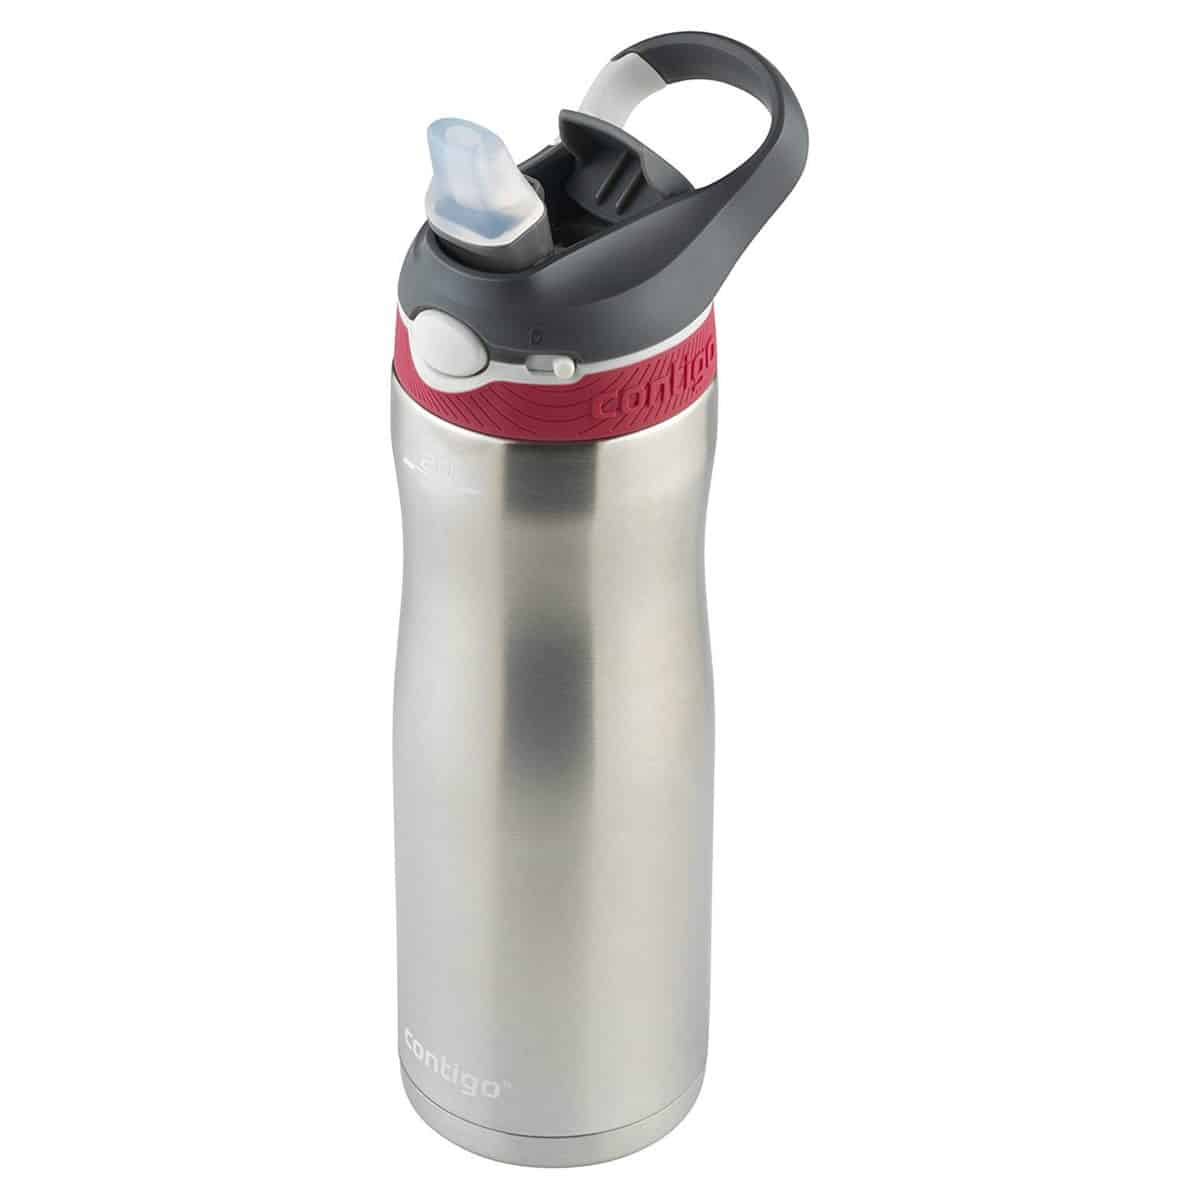 Contigo AUTOSPOUT Straw Ashland Chill Stainless Steel Water Bottle, 20 oz, Sangria